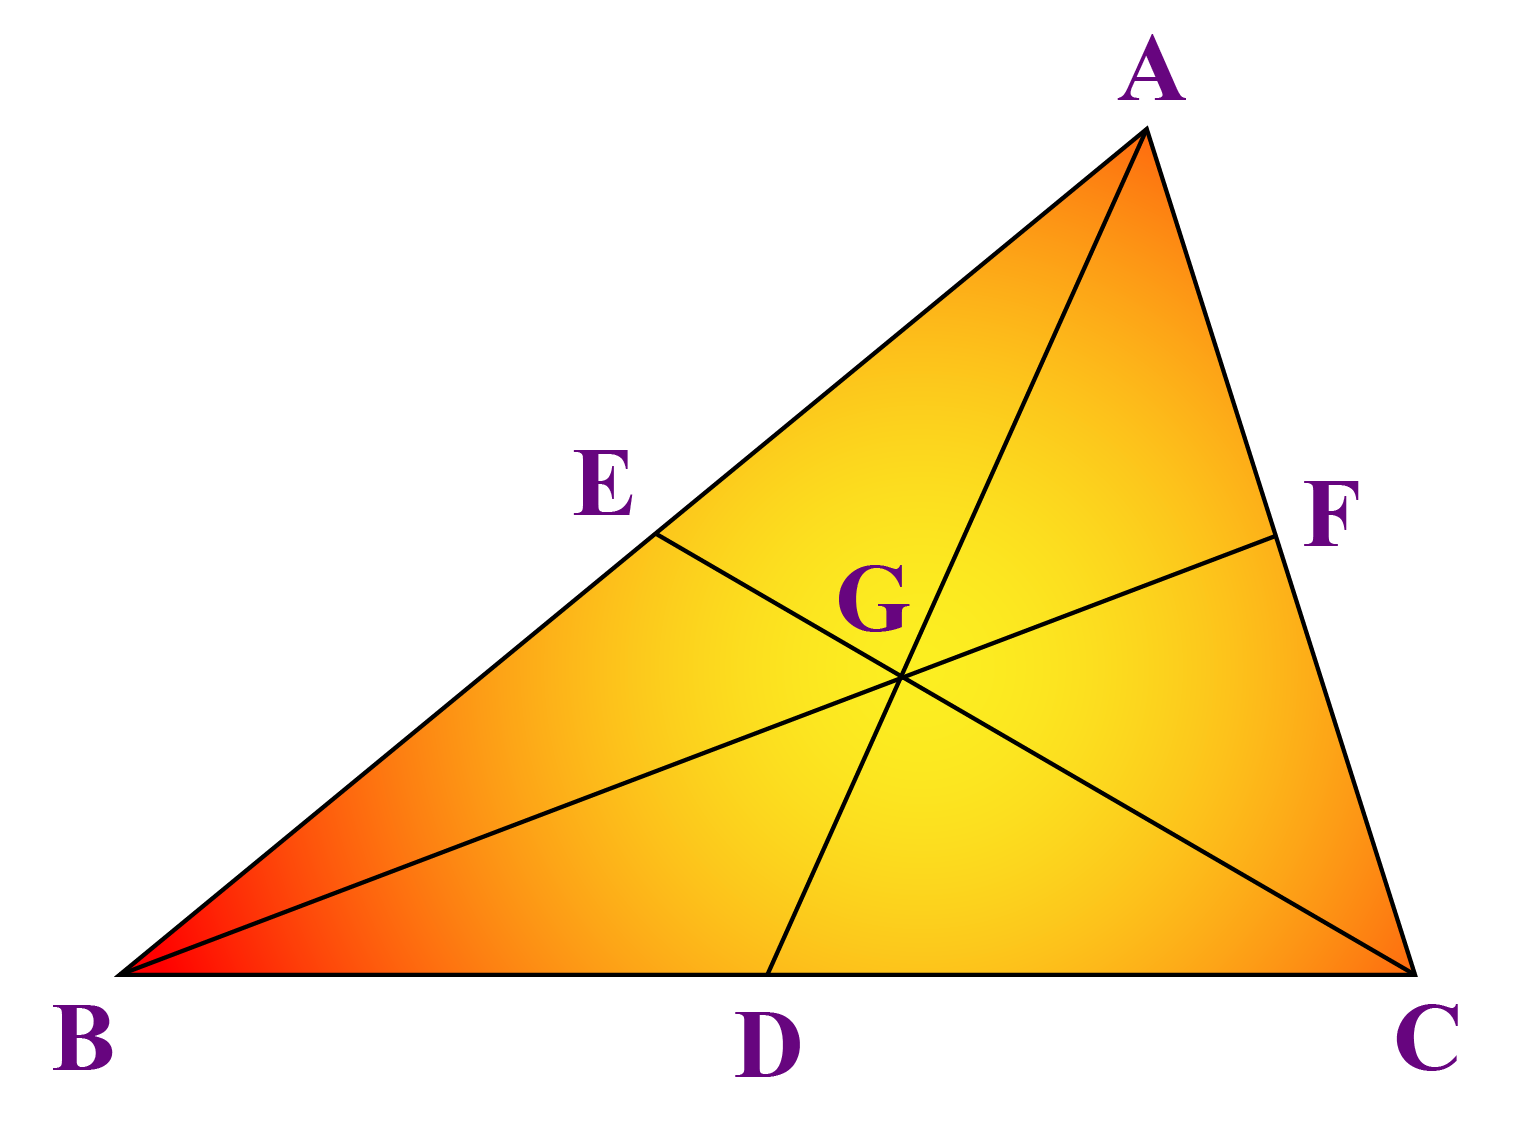 Triangle with three medians and centroid G